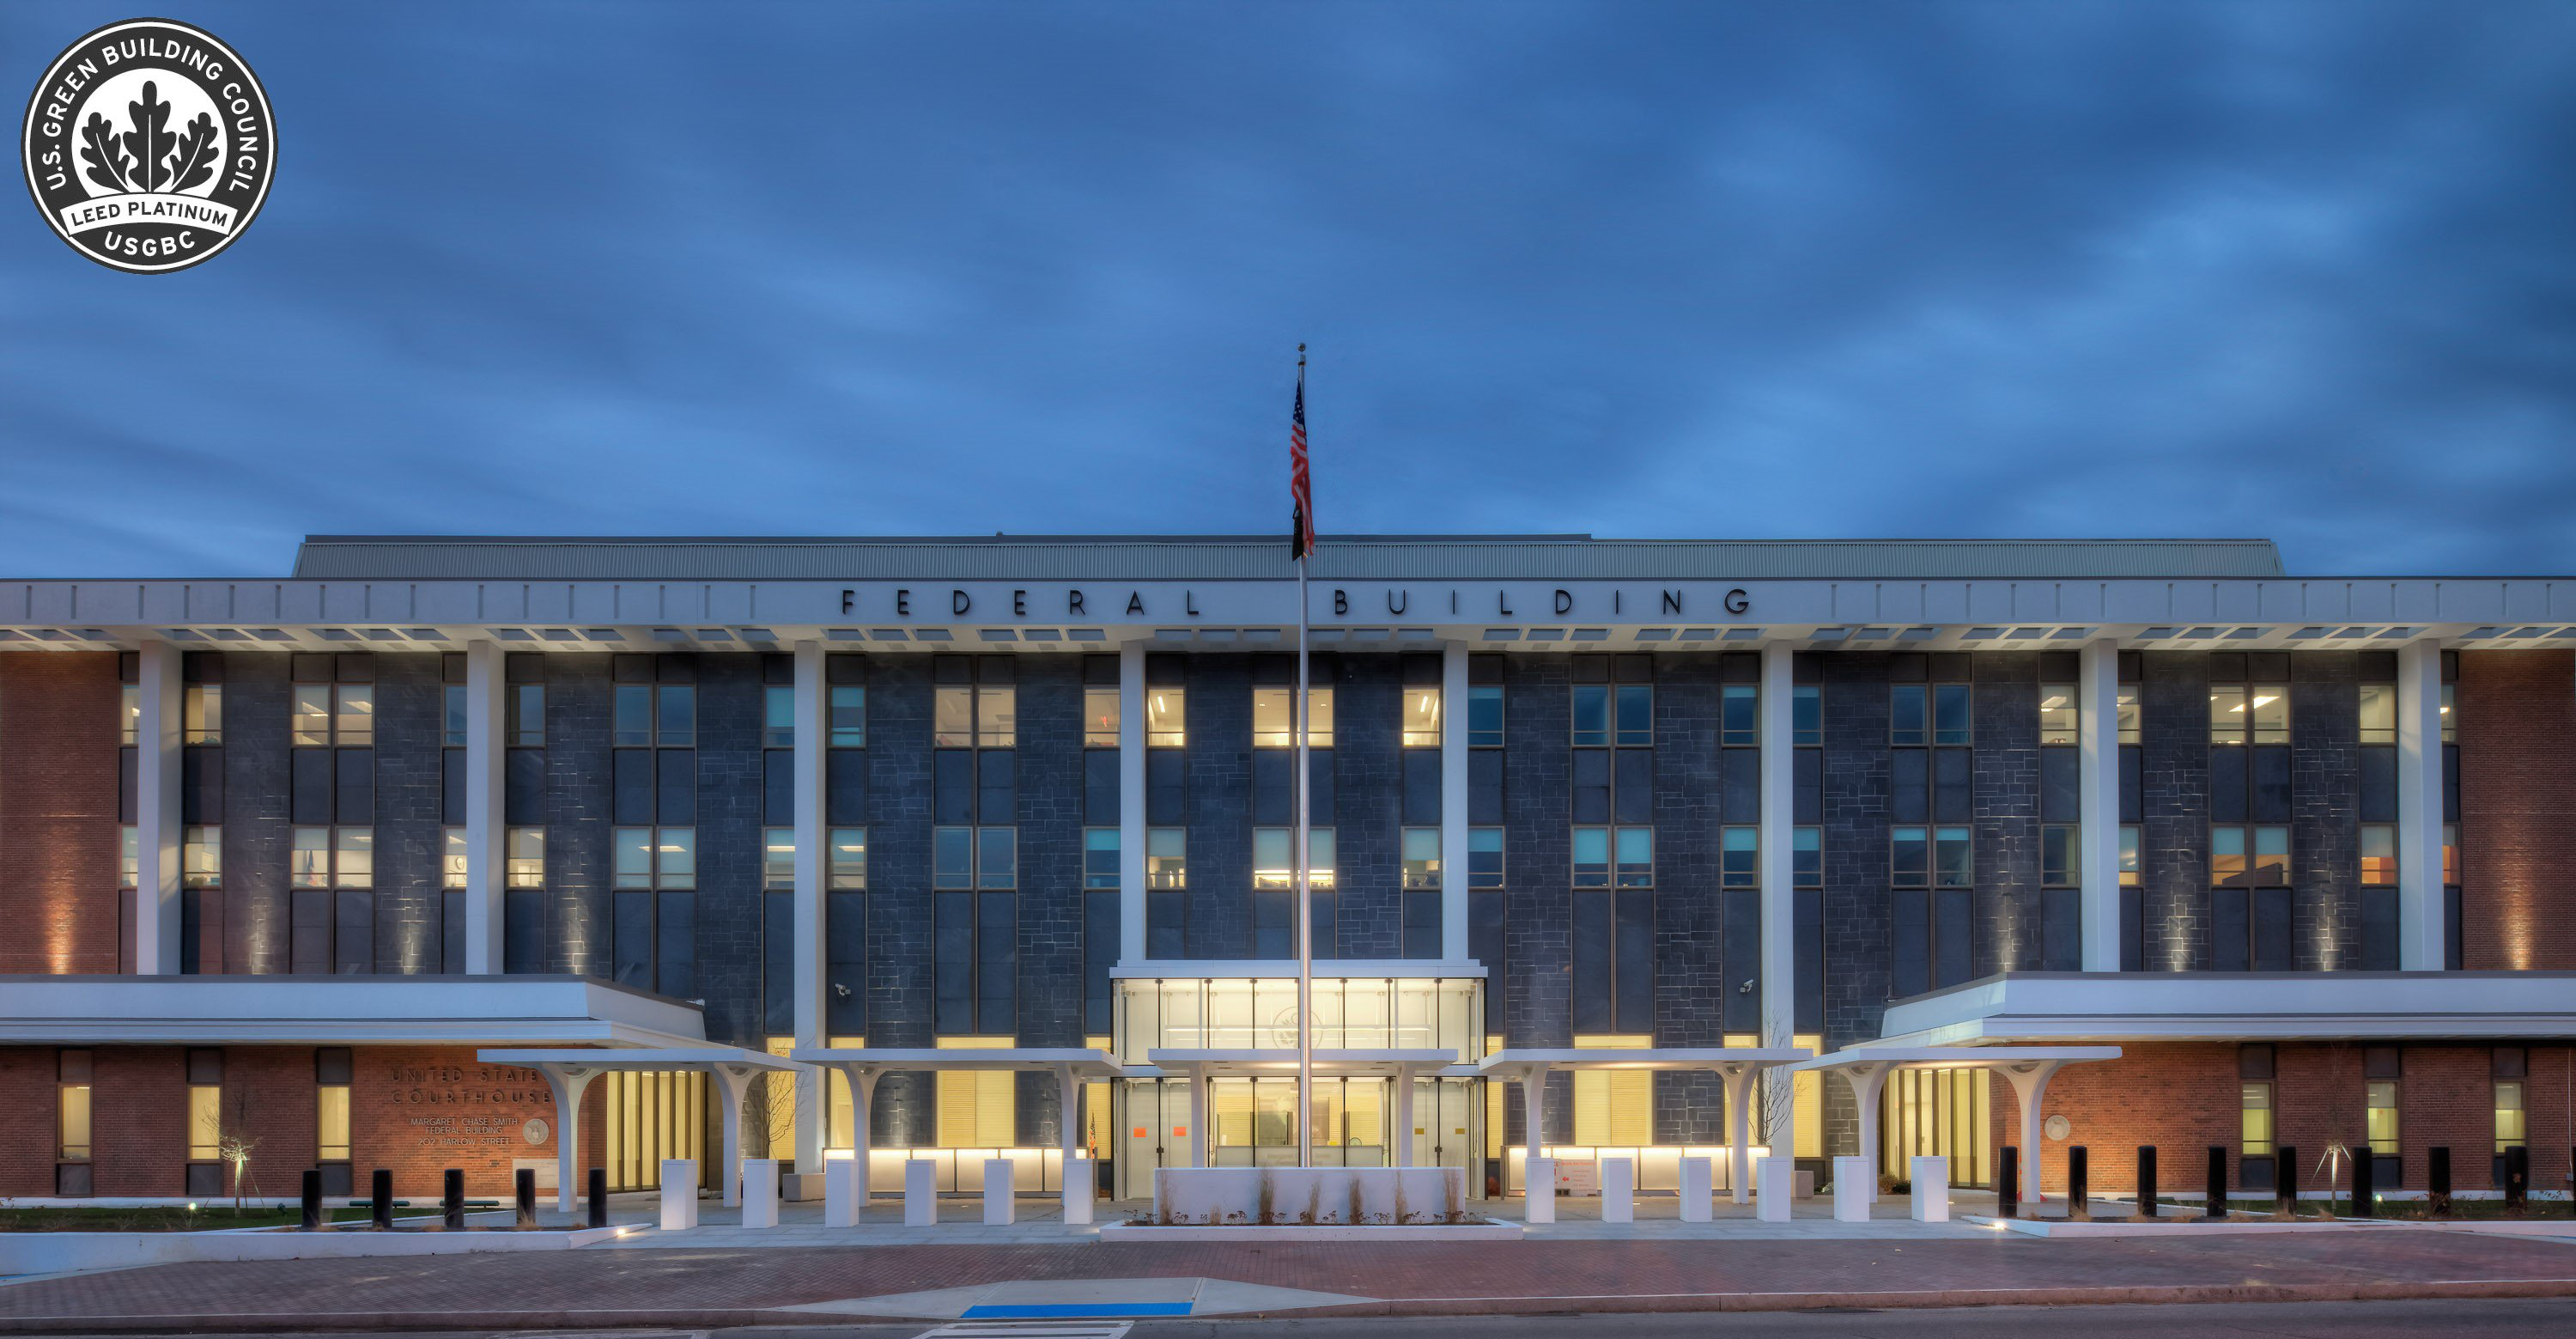 U.S. General Services Administration's Margaret Chase Smith Federal Building, Bangor, ME – photography by Christopher Barnes